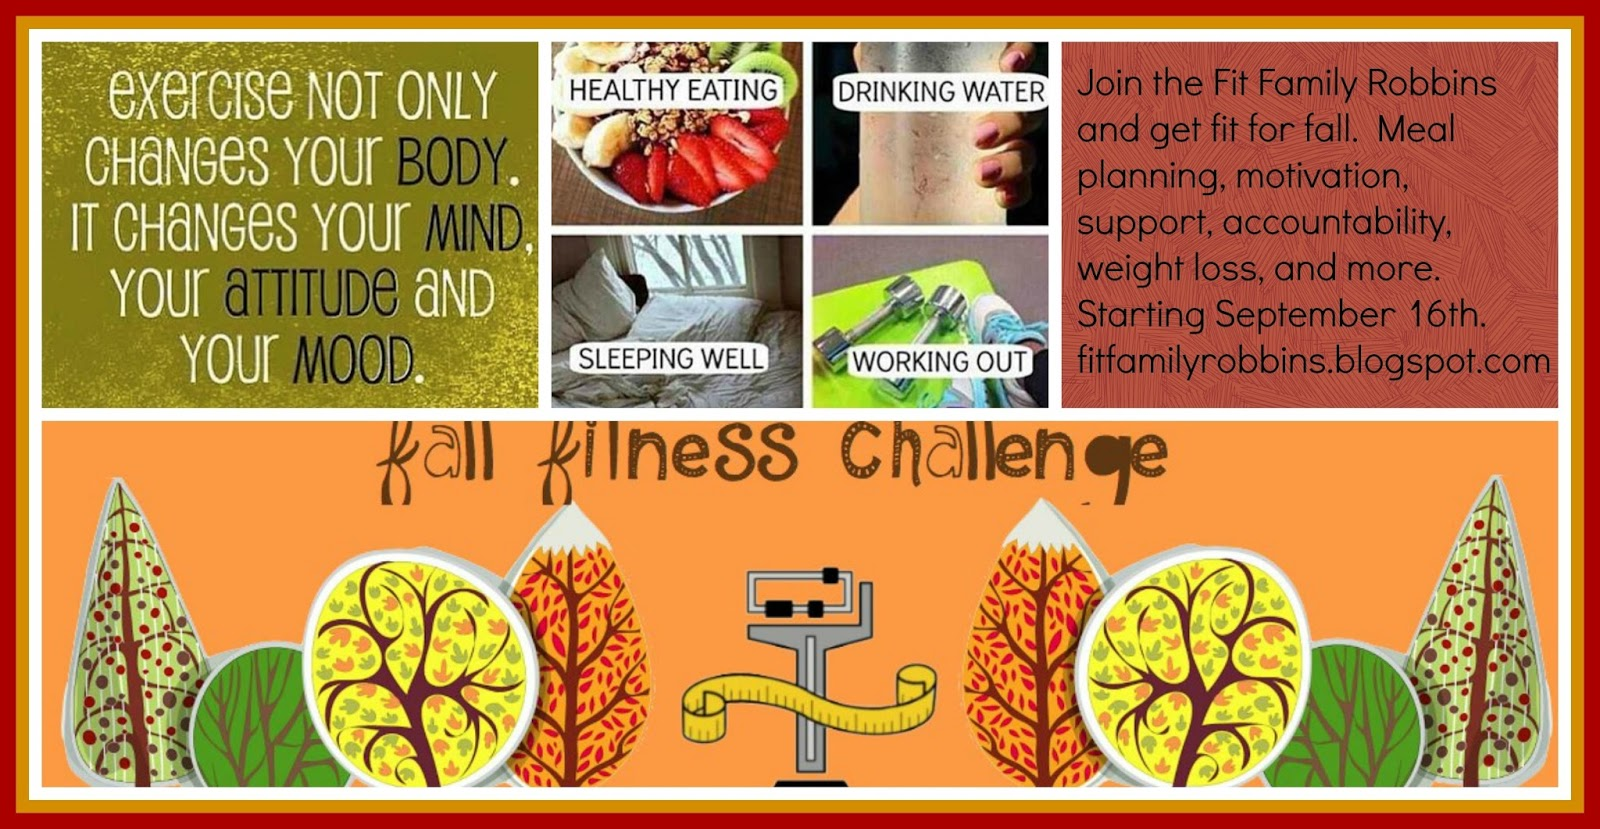 fit family robbins fall fitness challenge